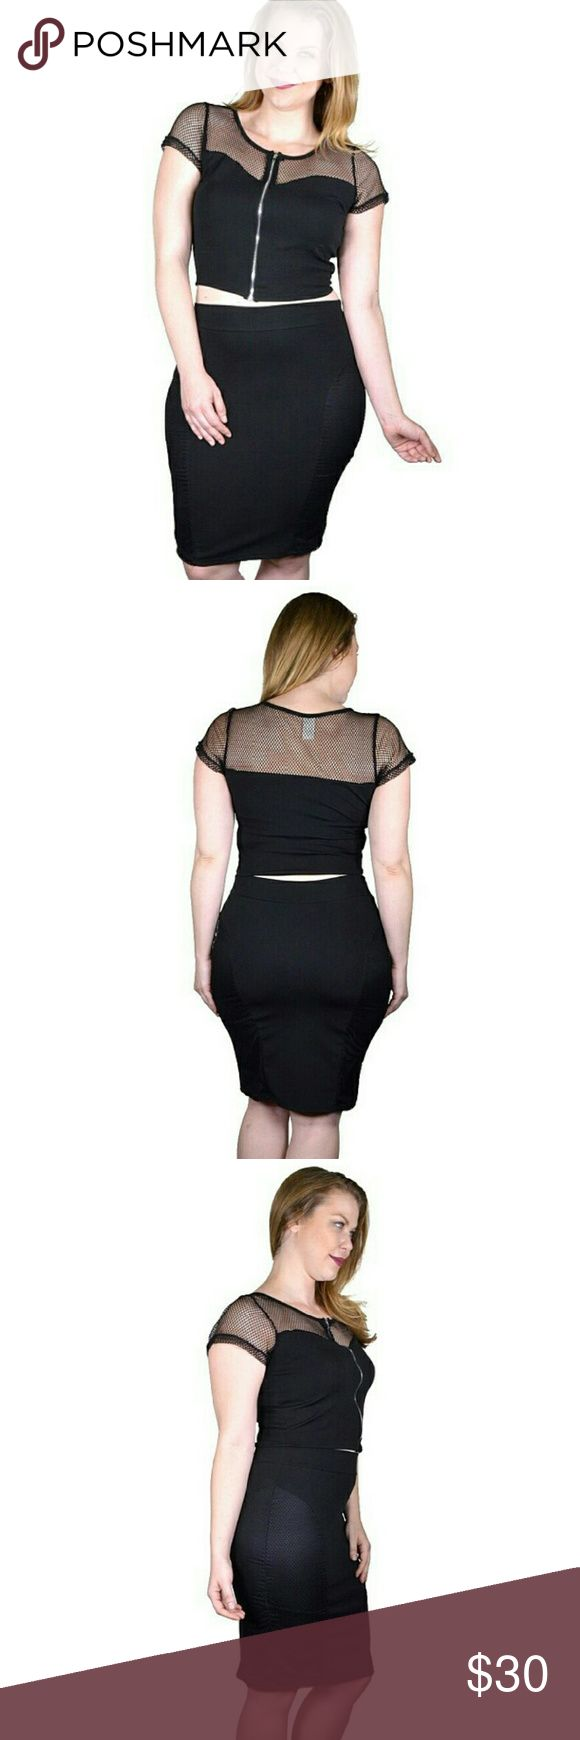 Plus Size Crop Top and Pencil Fitted Skirt? Made In U.S.A 1XL.2XL.3XL 96% Polyester 4% Spandex Black? Tops Crop Tops